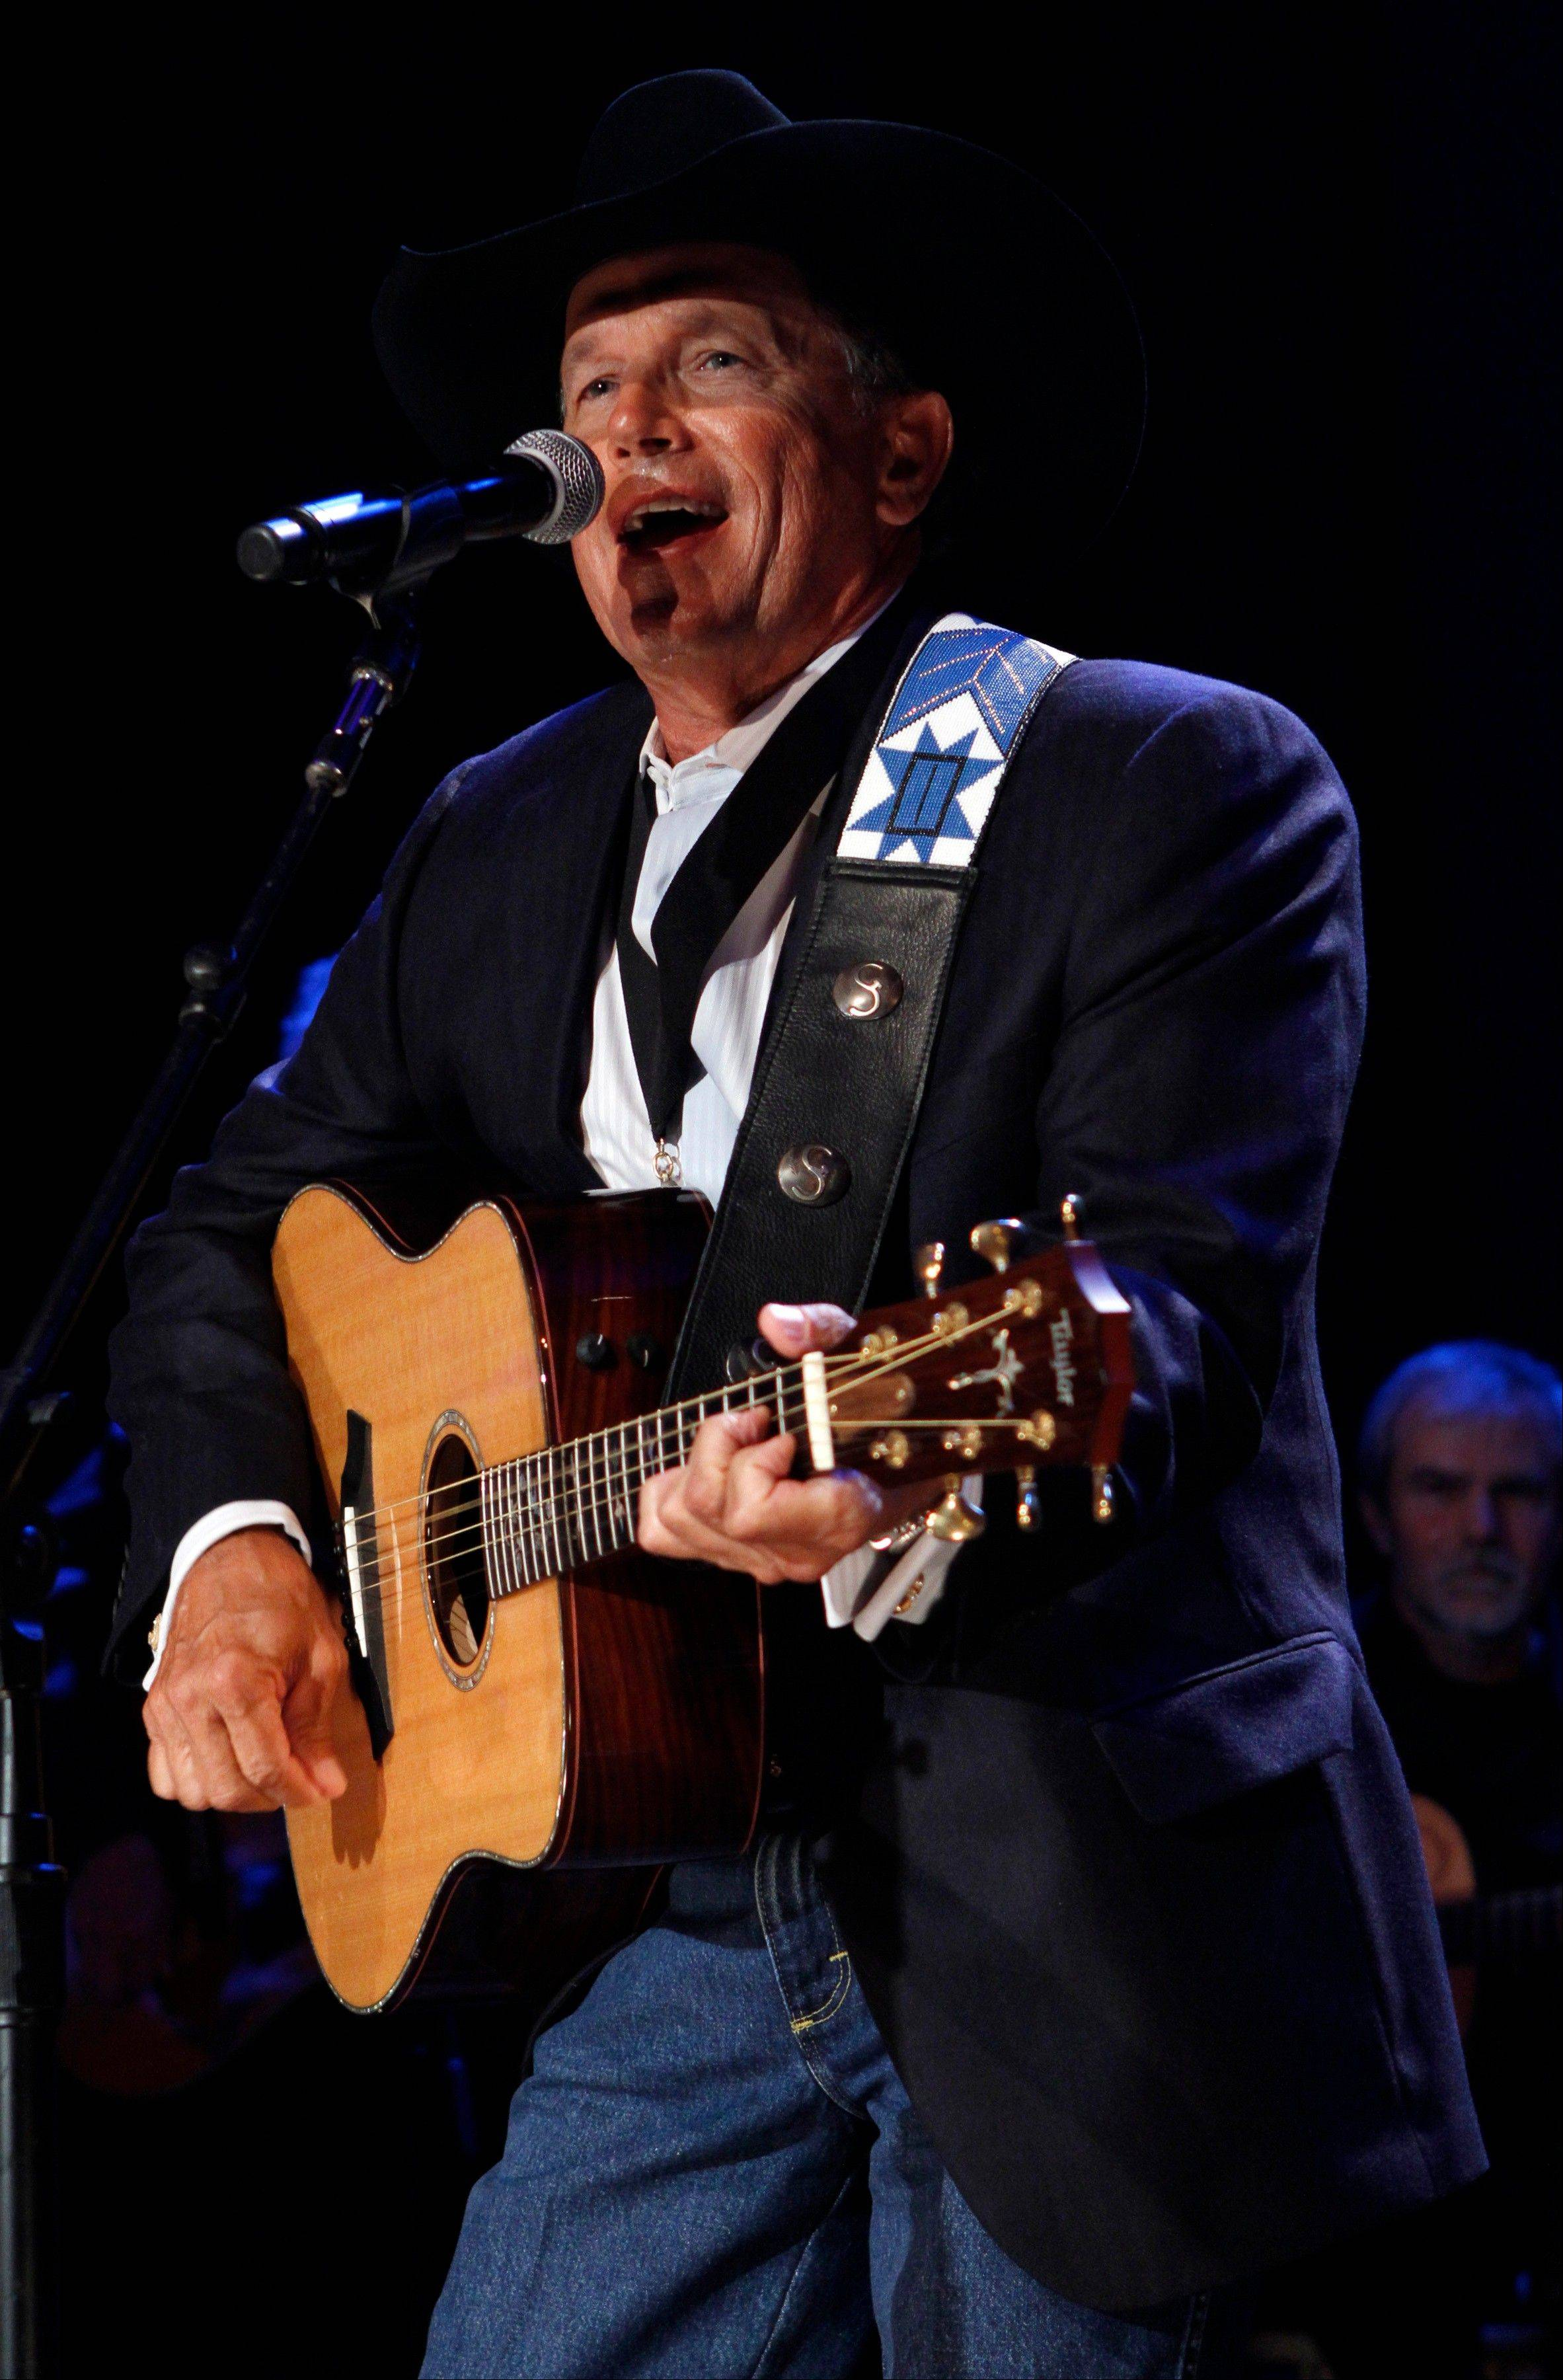 George Strait performs at the Country Music Hall of Fame Inductions on Sunday in Nashville, Tenn.